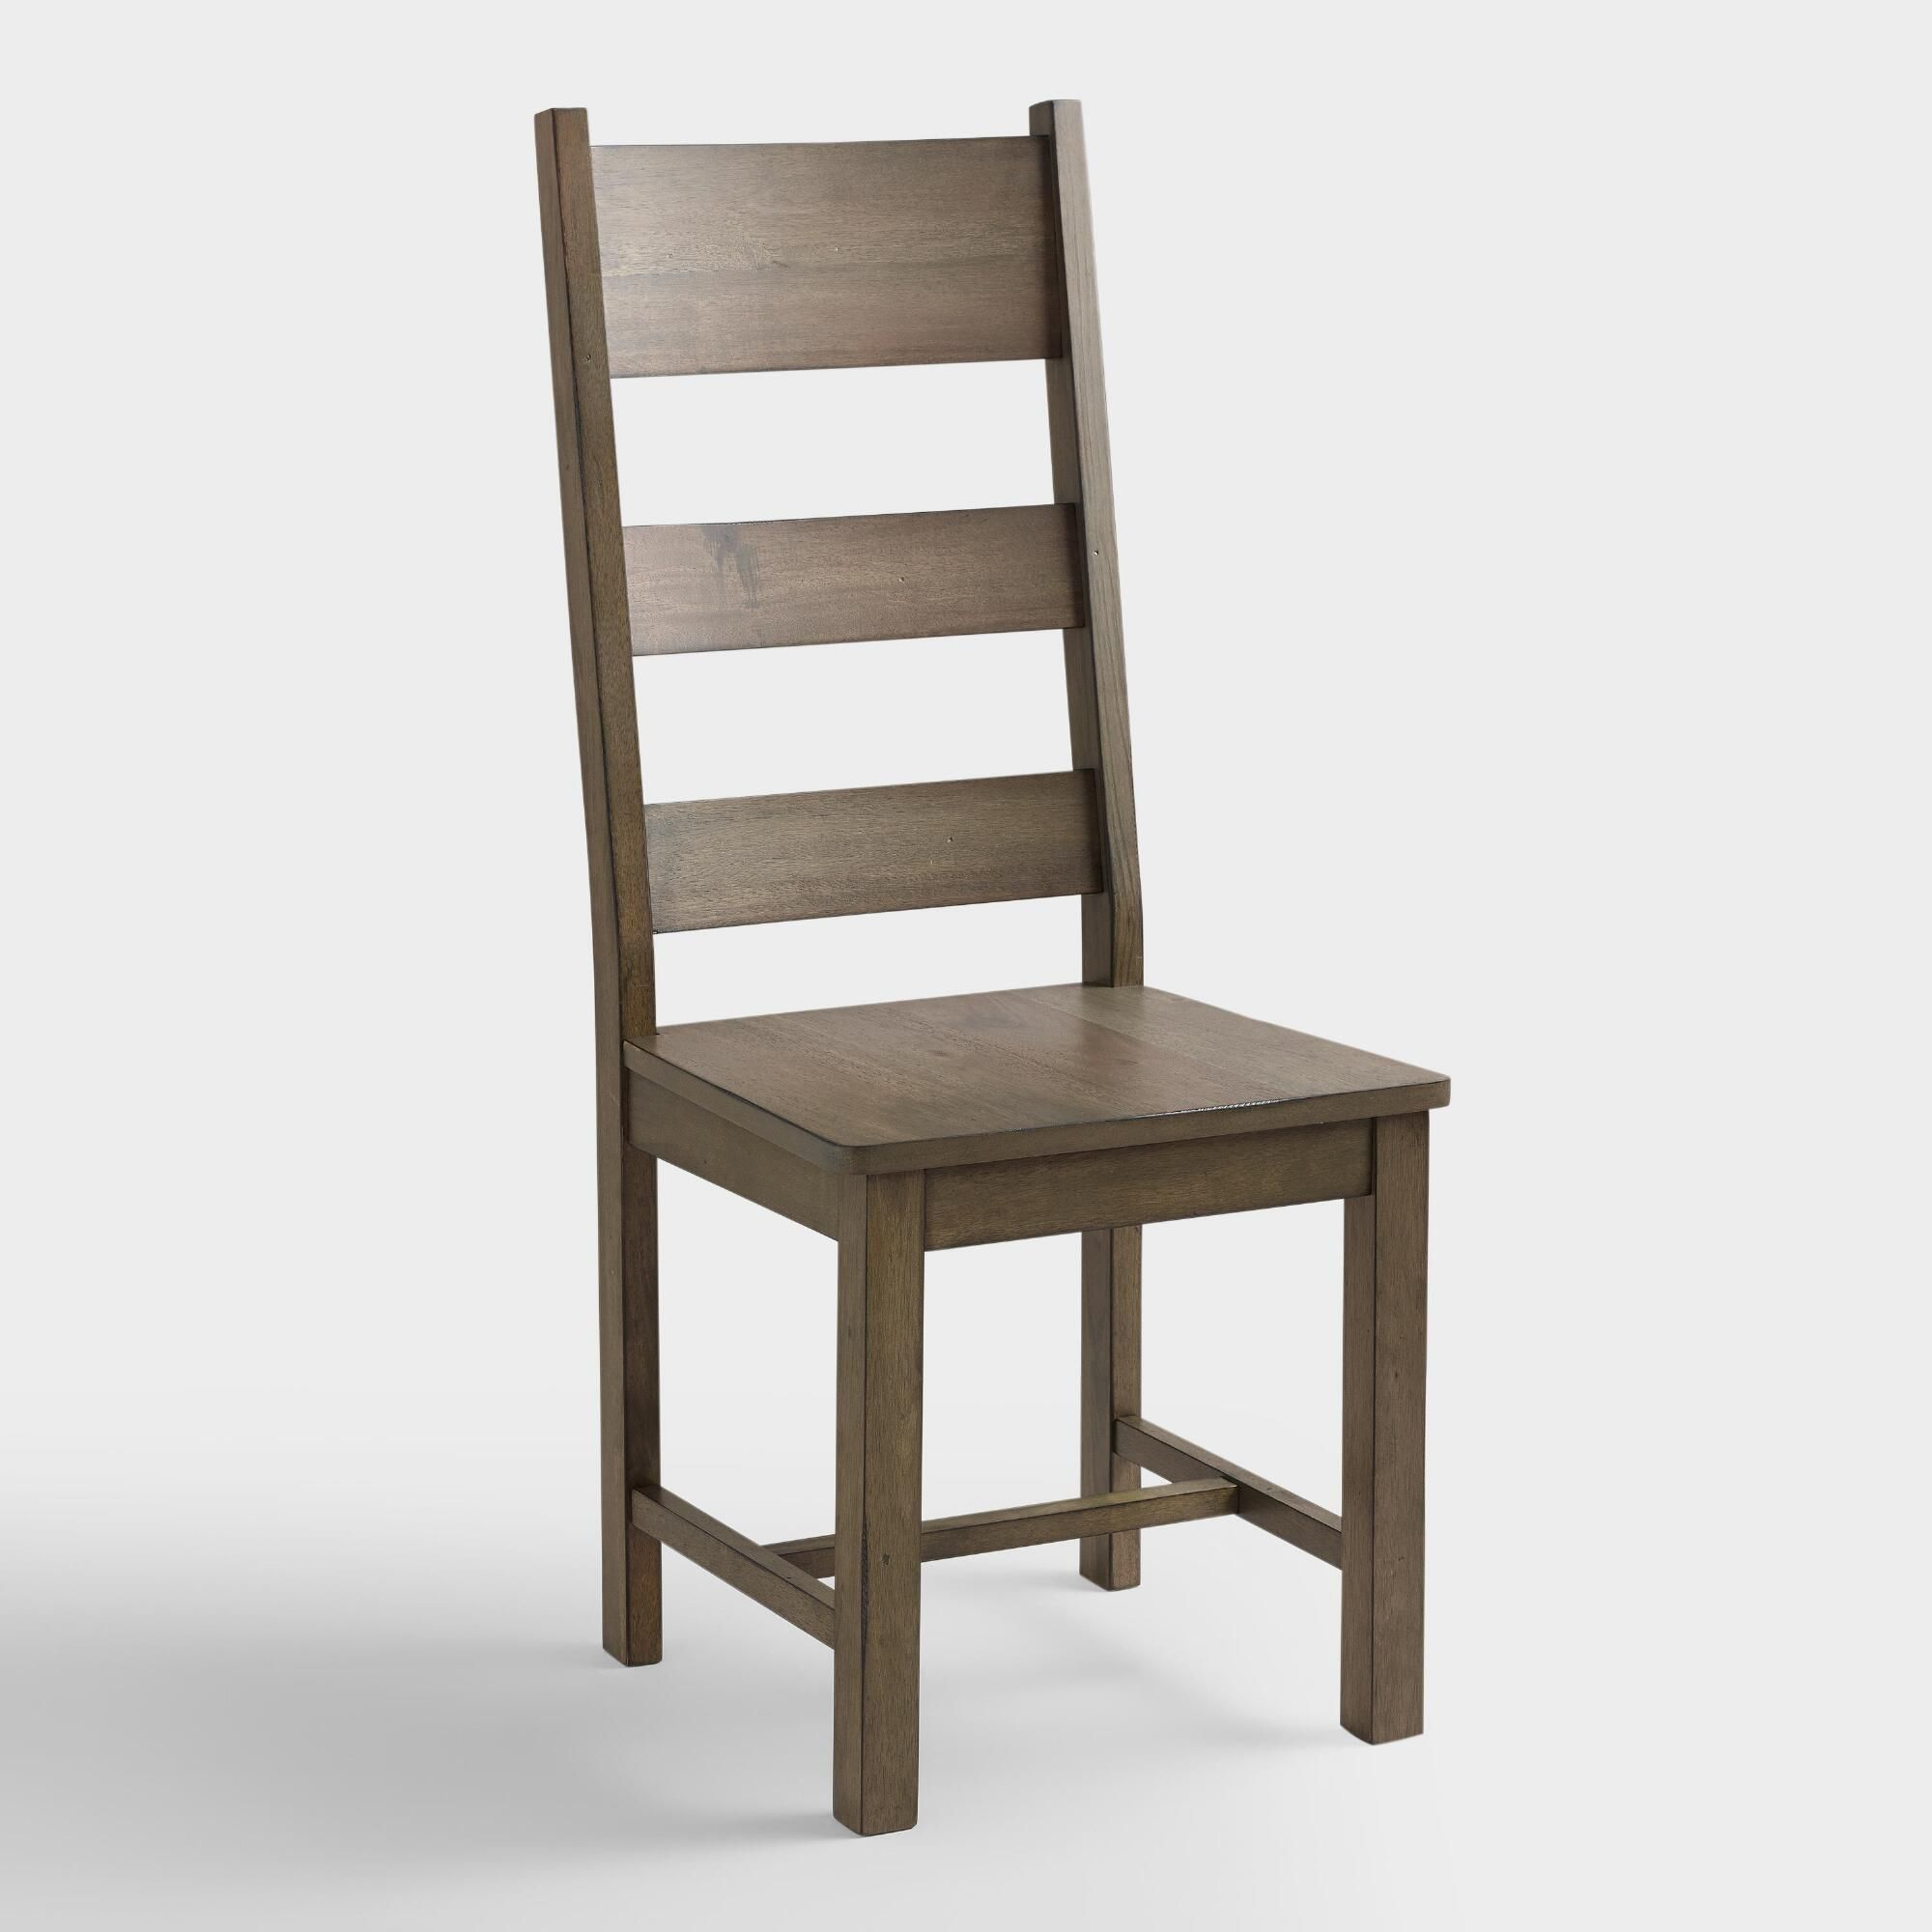 Crafted of rubberwood with a distressed finish that gives it a weathered aesthetic our classic dining chairs add farmhouse elegance to the table